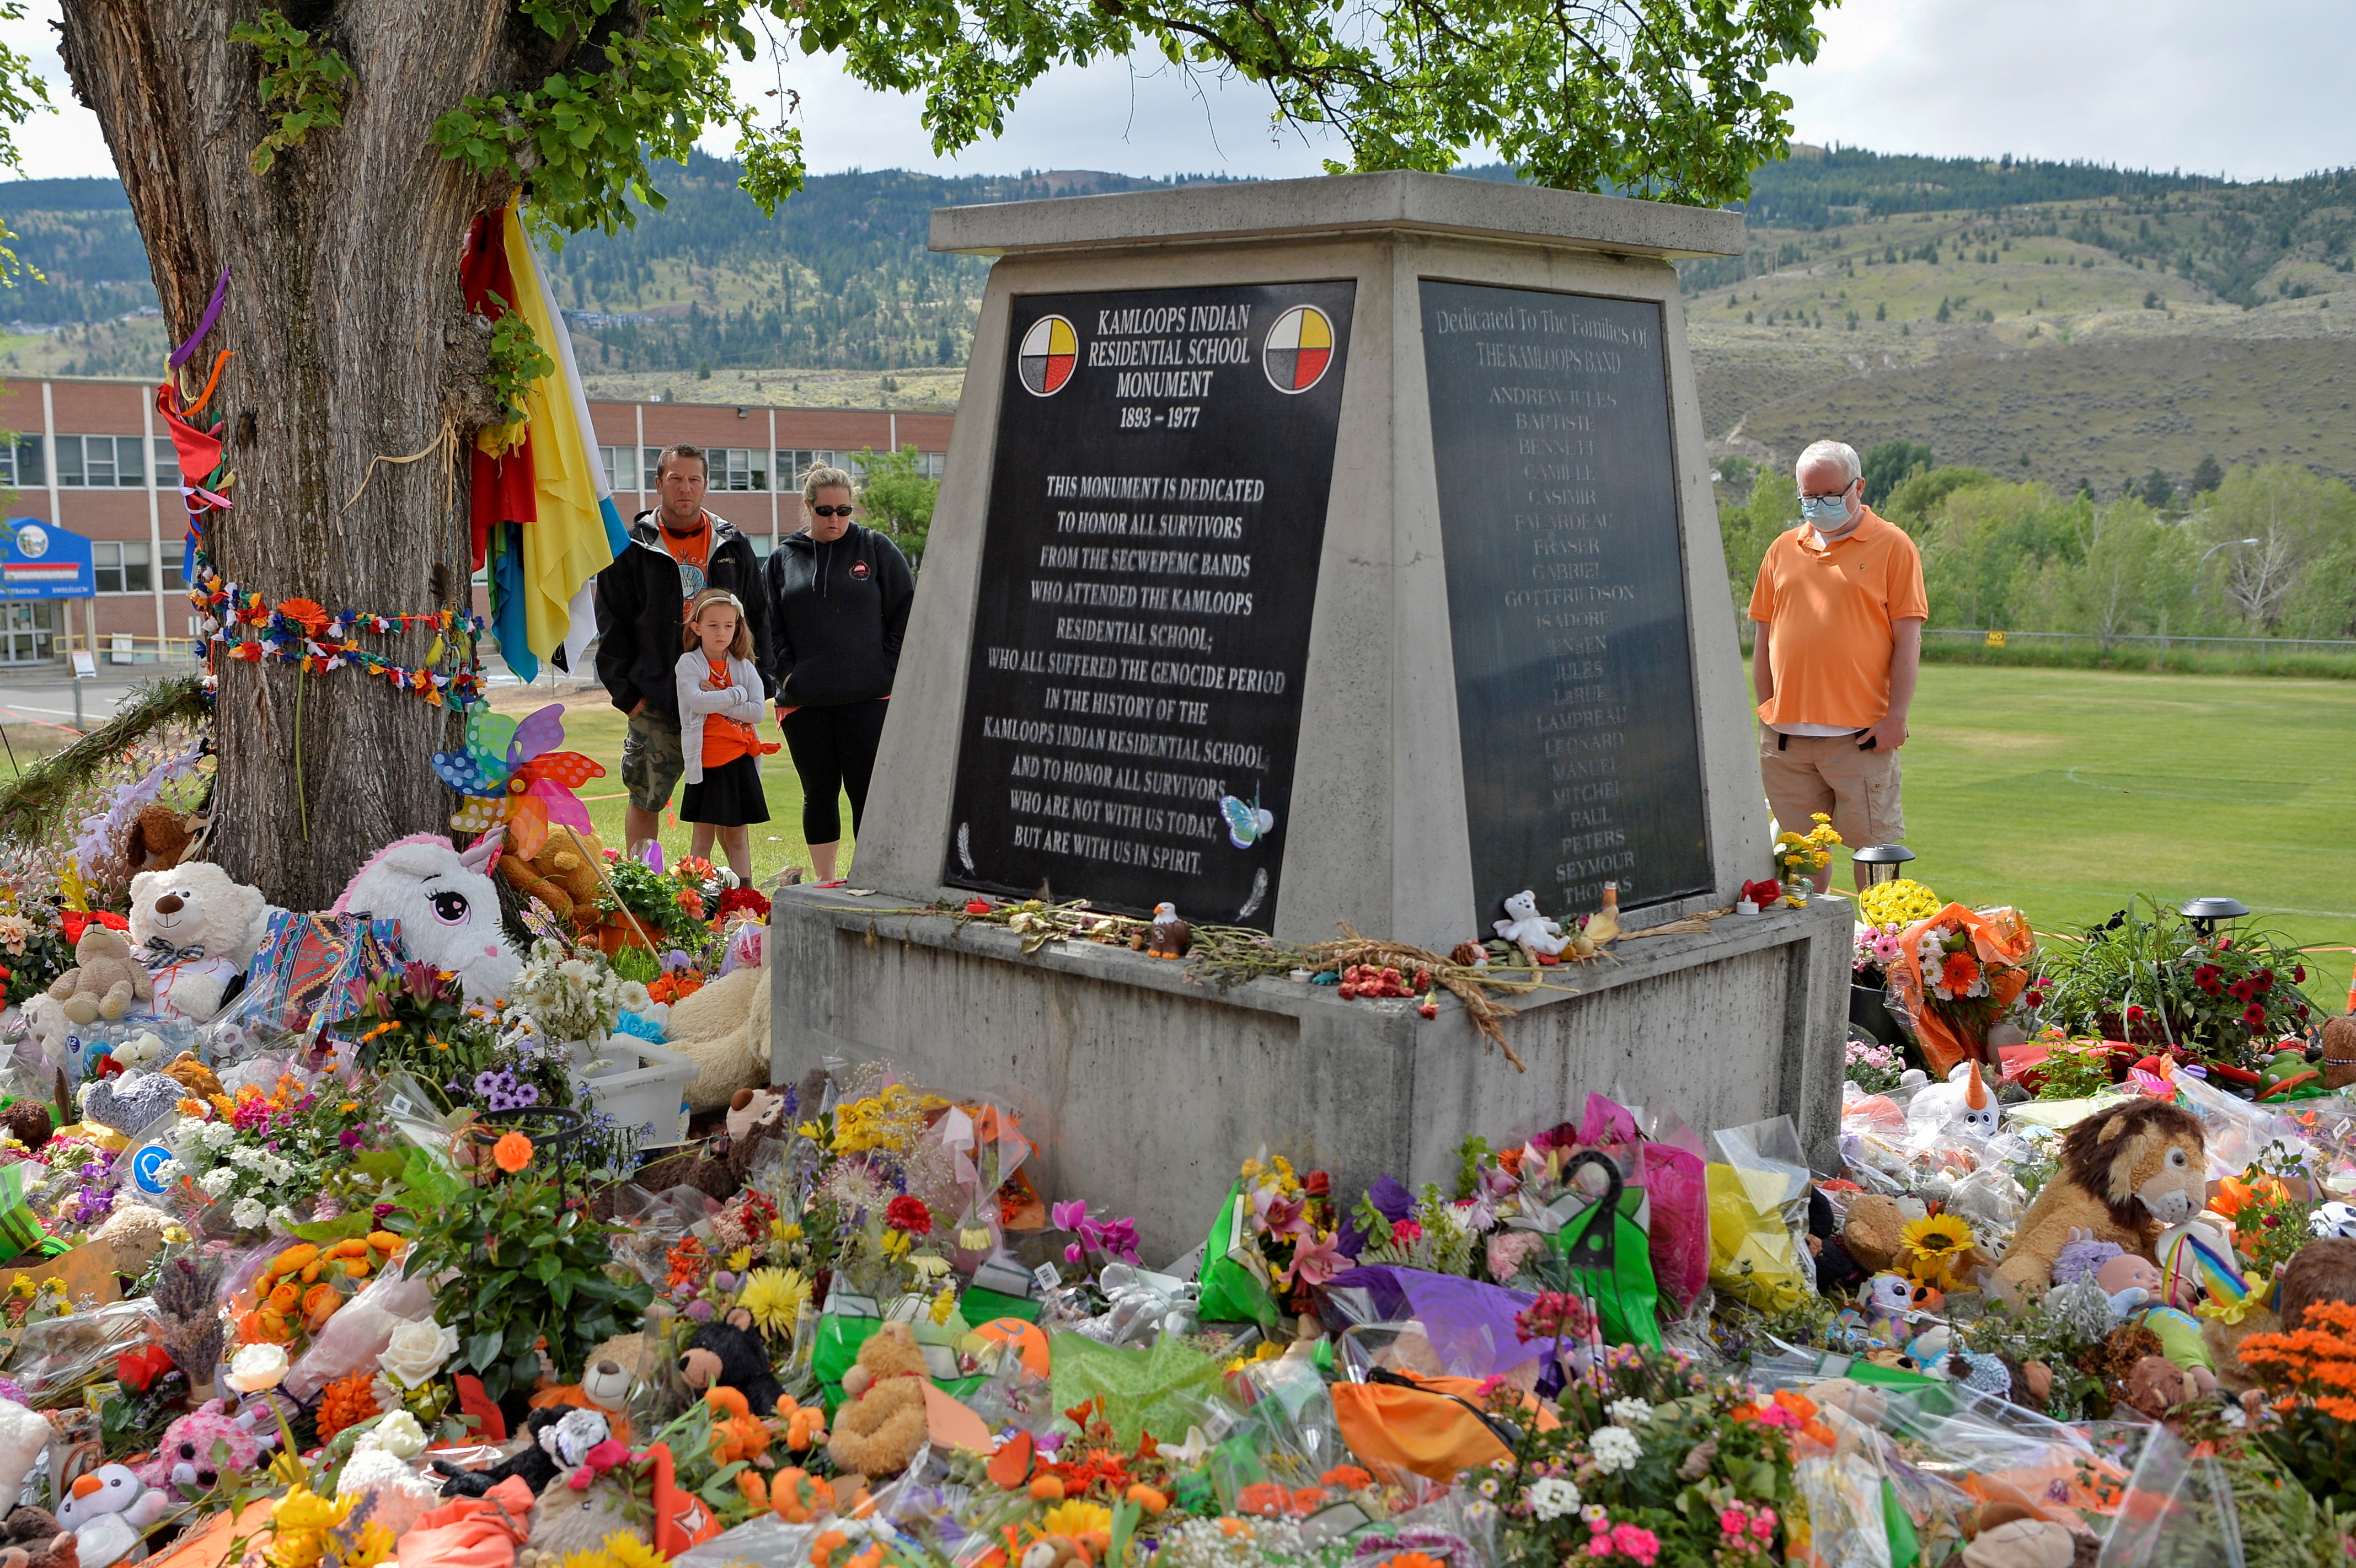 People visit a makeshift memorial on the grounds of the former Kamloops Indian Residential School, after the Tk'emlups te Secwepemc band council encouraged mourners to take part in a national day of prayer to honour the remains of 215 children that were found at the site in Kamloops, British Columbia, Canada June 6, 2021.  REUTERS/Jennifer Gauthier//File Photo